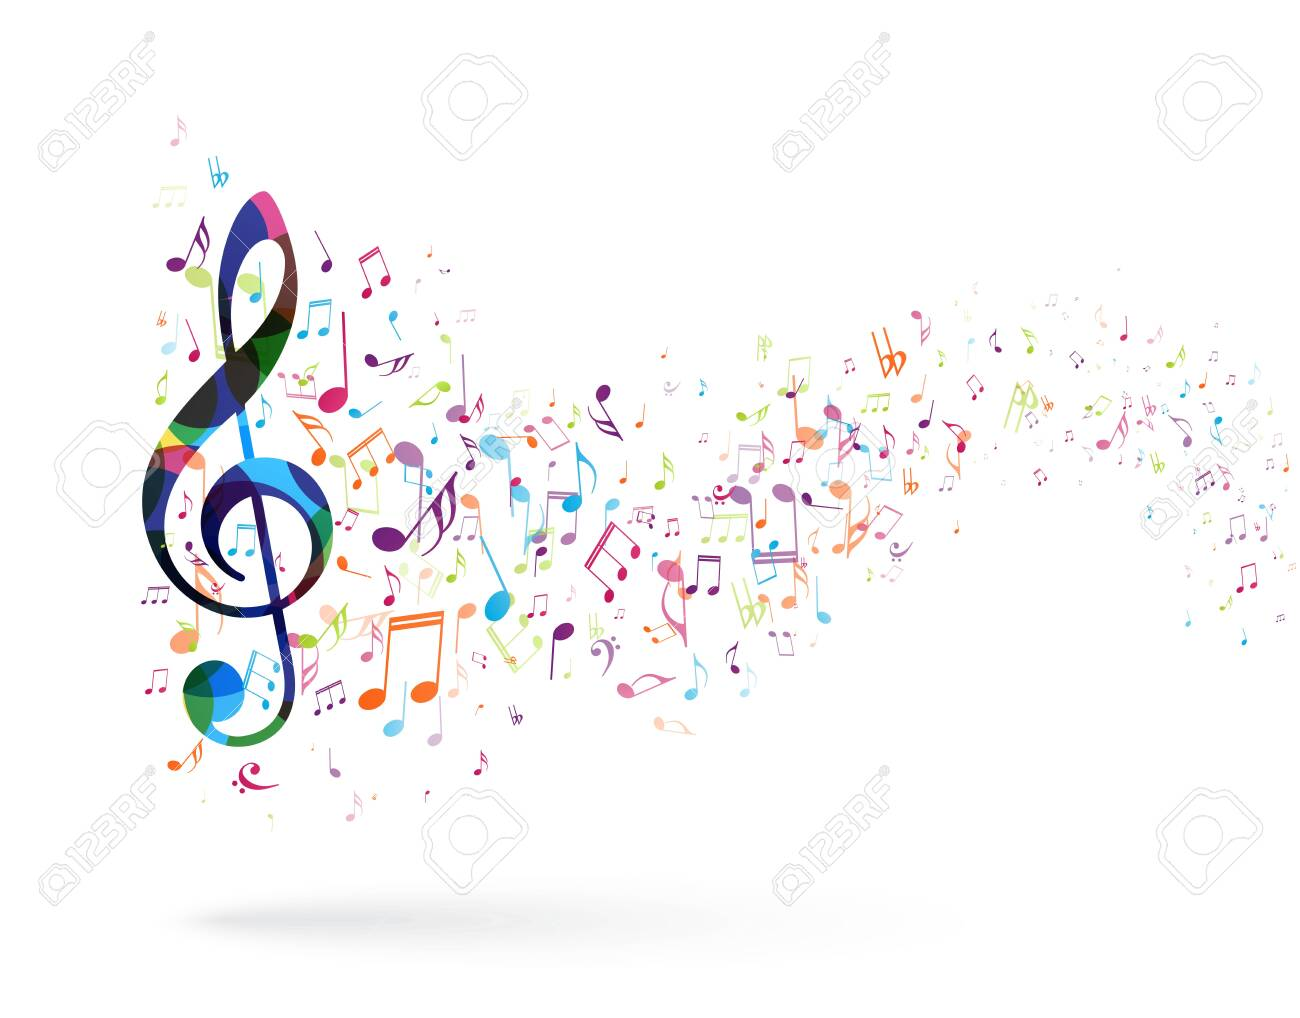 Transparent Music Note Png - Clipart Colorful Music Notes Transparent  Background, Png Download - vhv